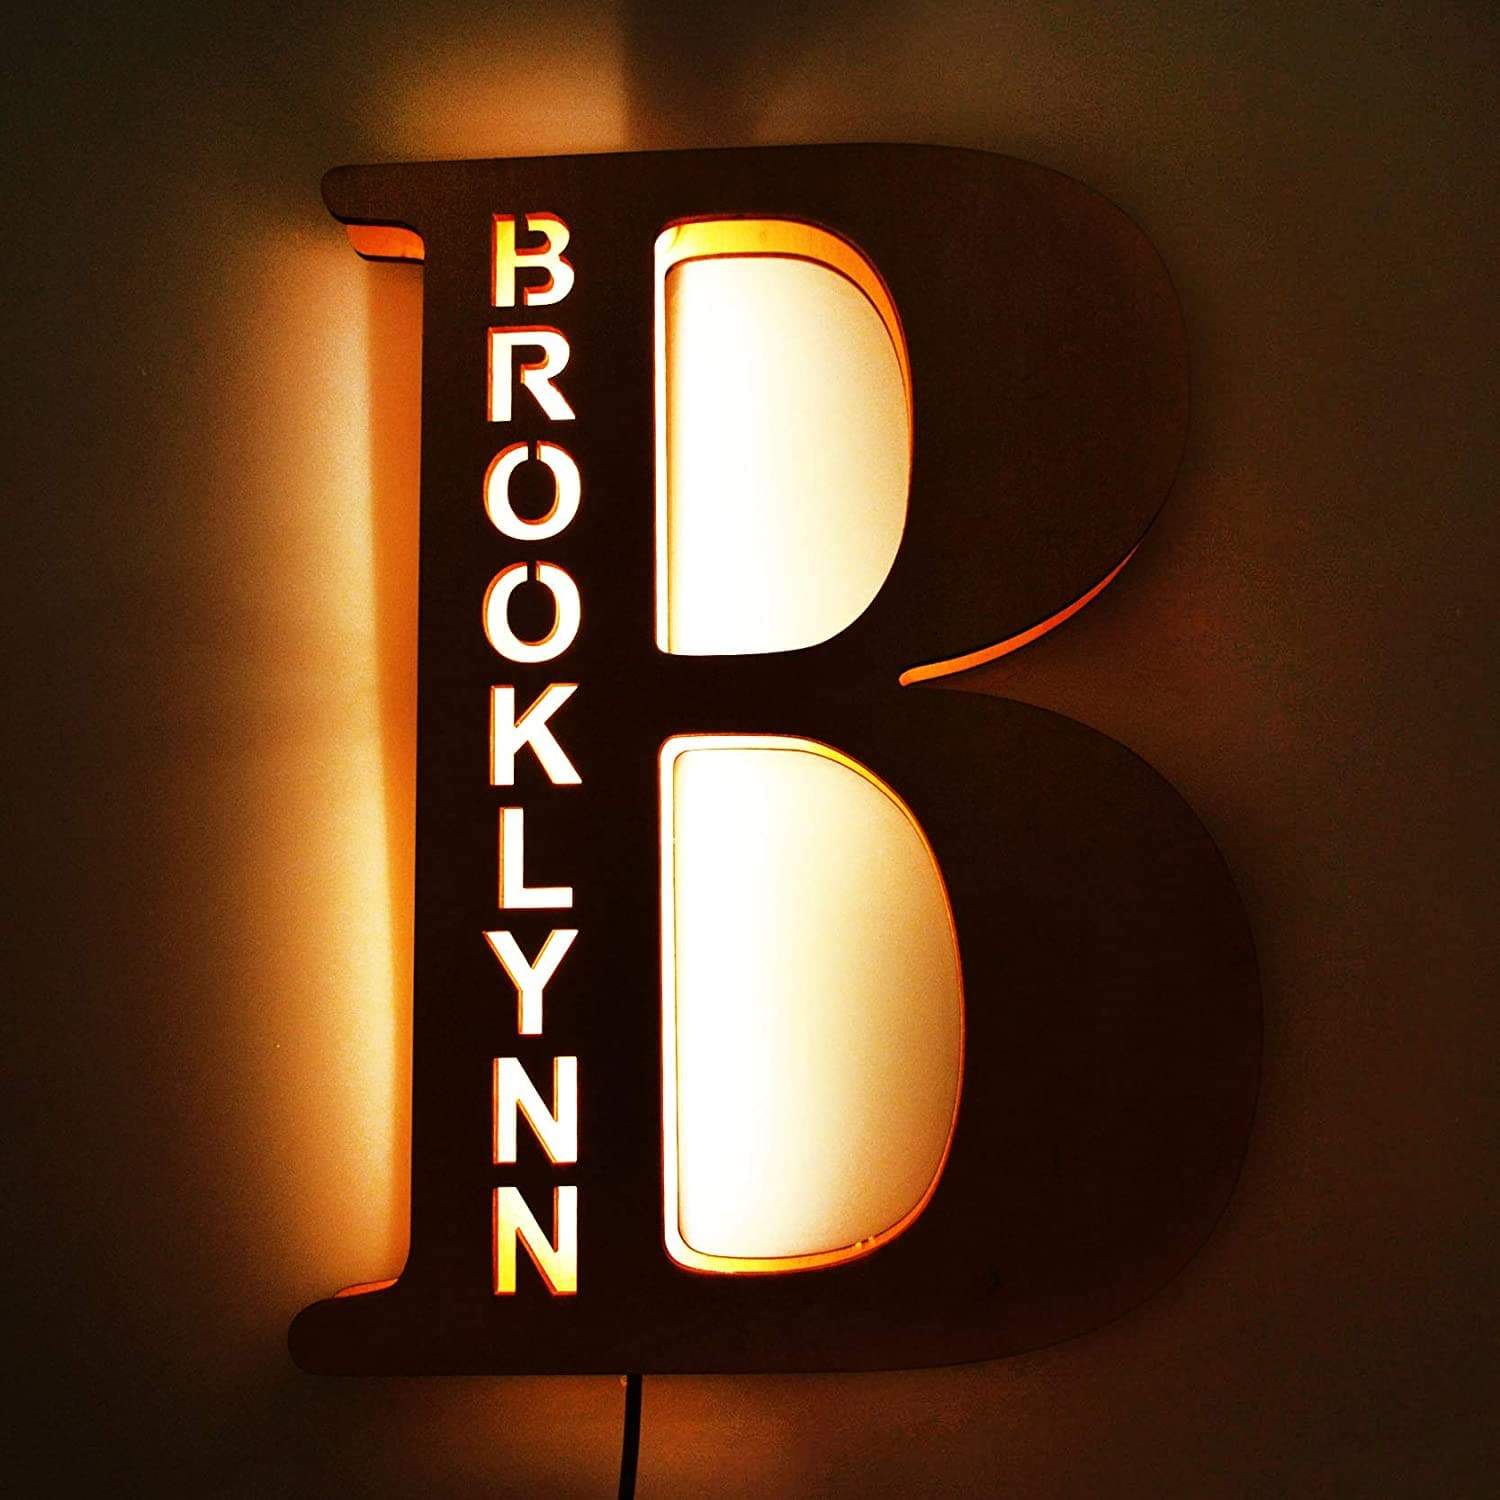 Custom Wooden Engraved Name Wall Light - Letter B